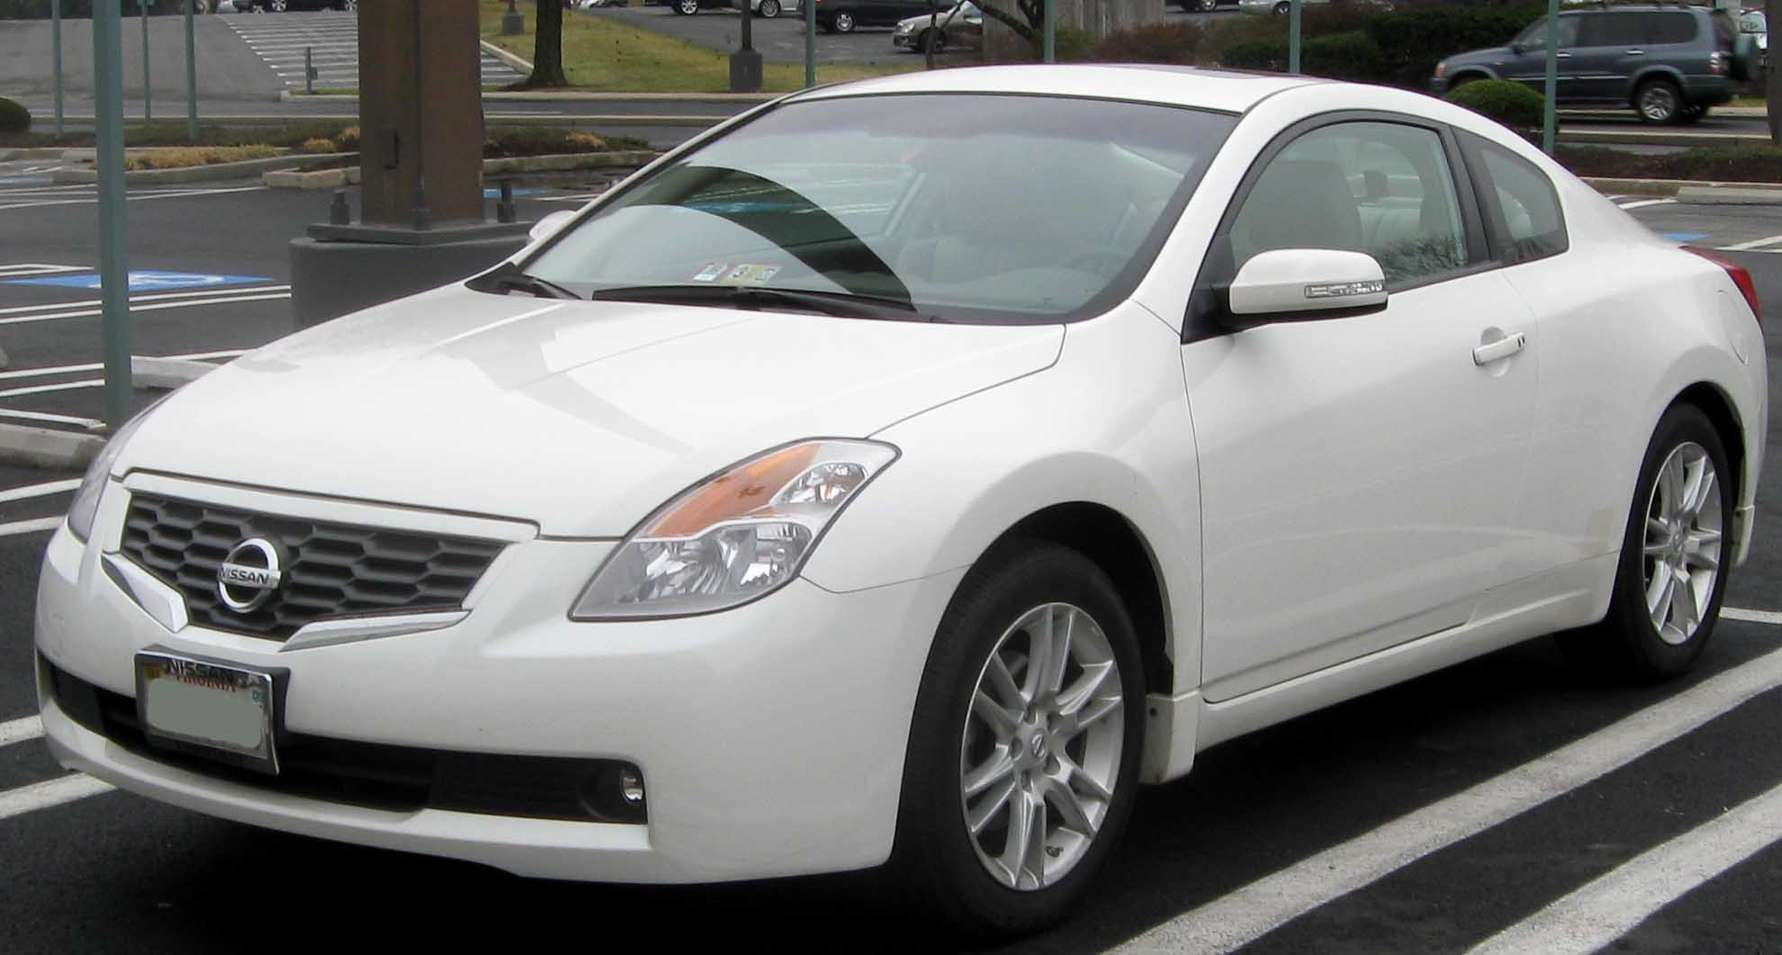 Nissan Altima Coupe #8661080